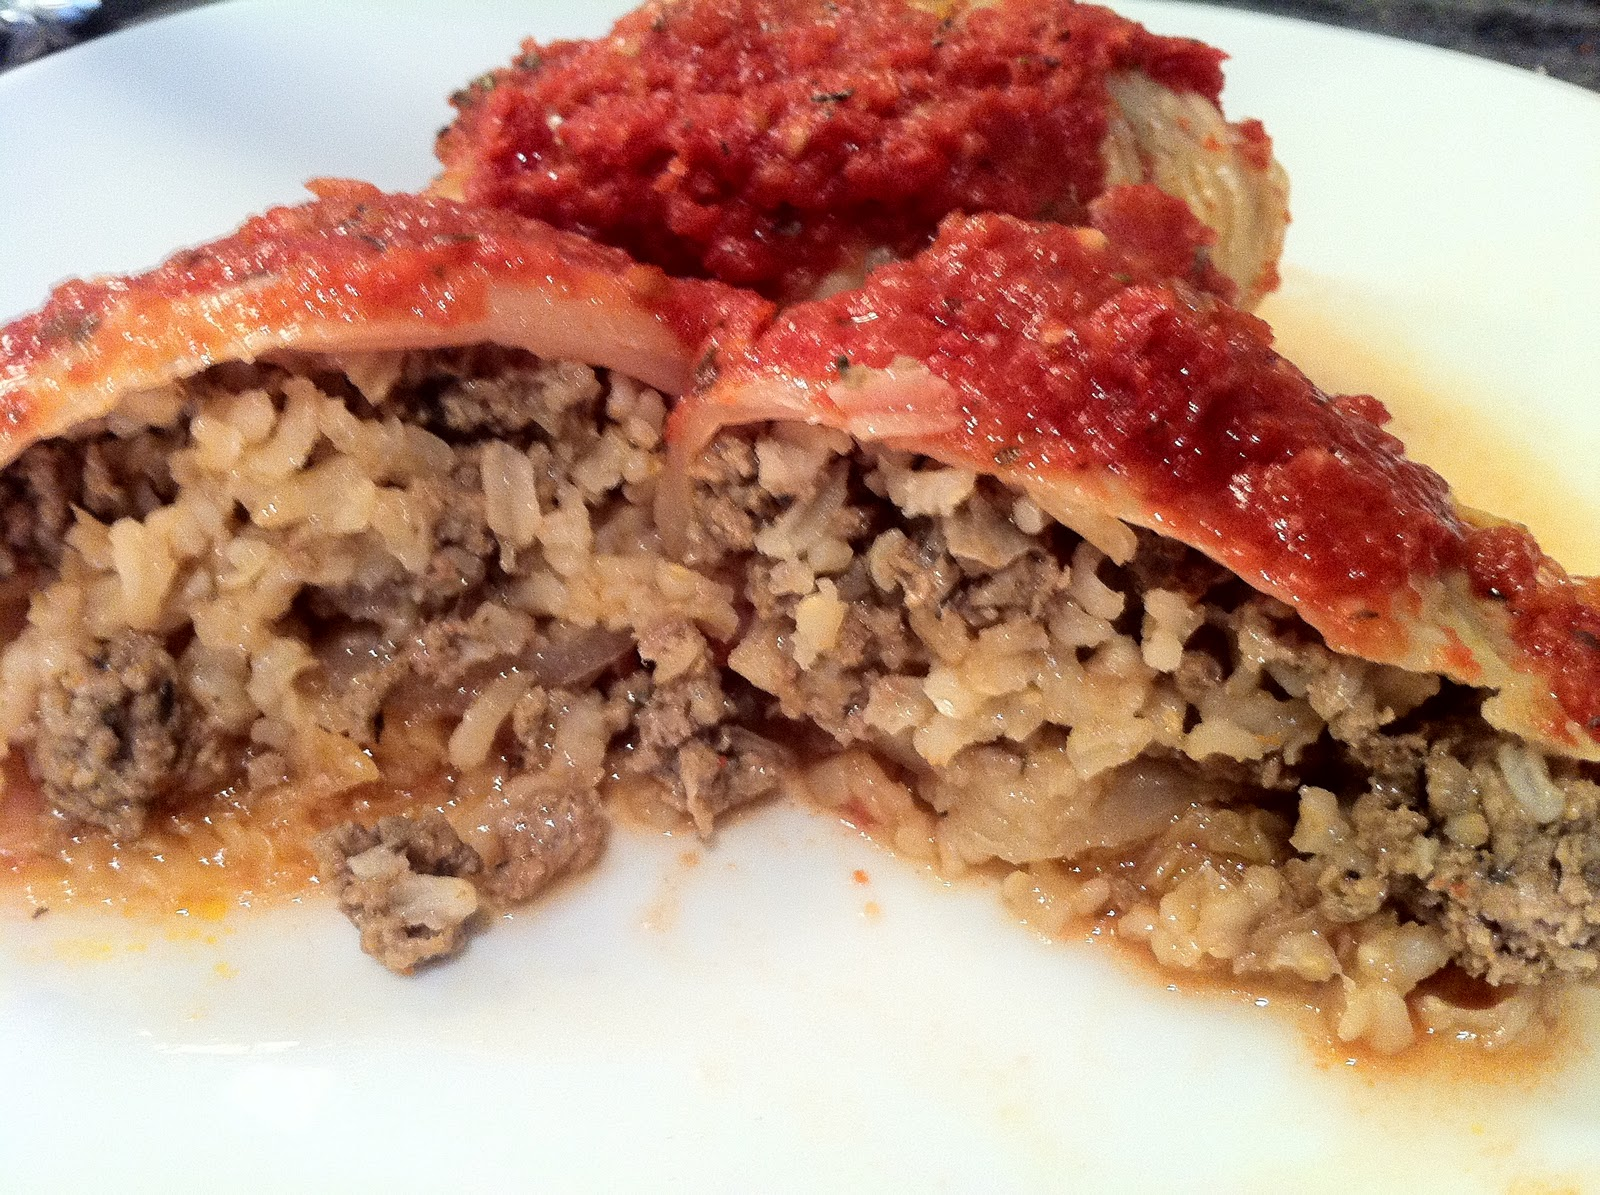 Recipes from 4EveryKitchen: Holishkes - Meat Stuffed Cabbage Rolls